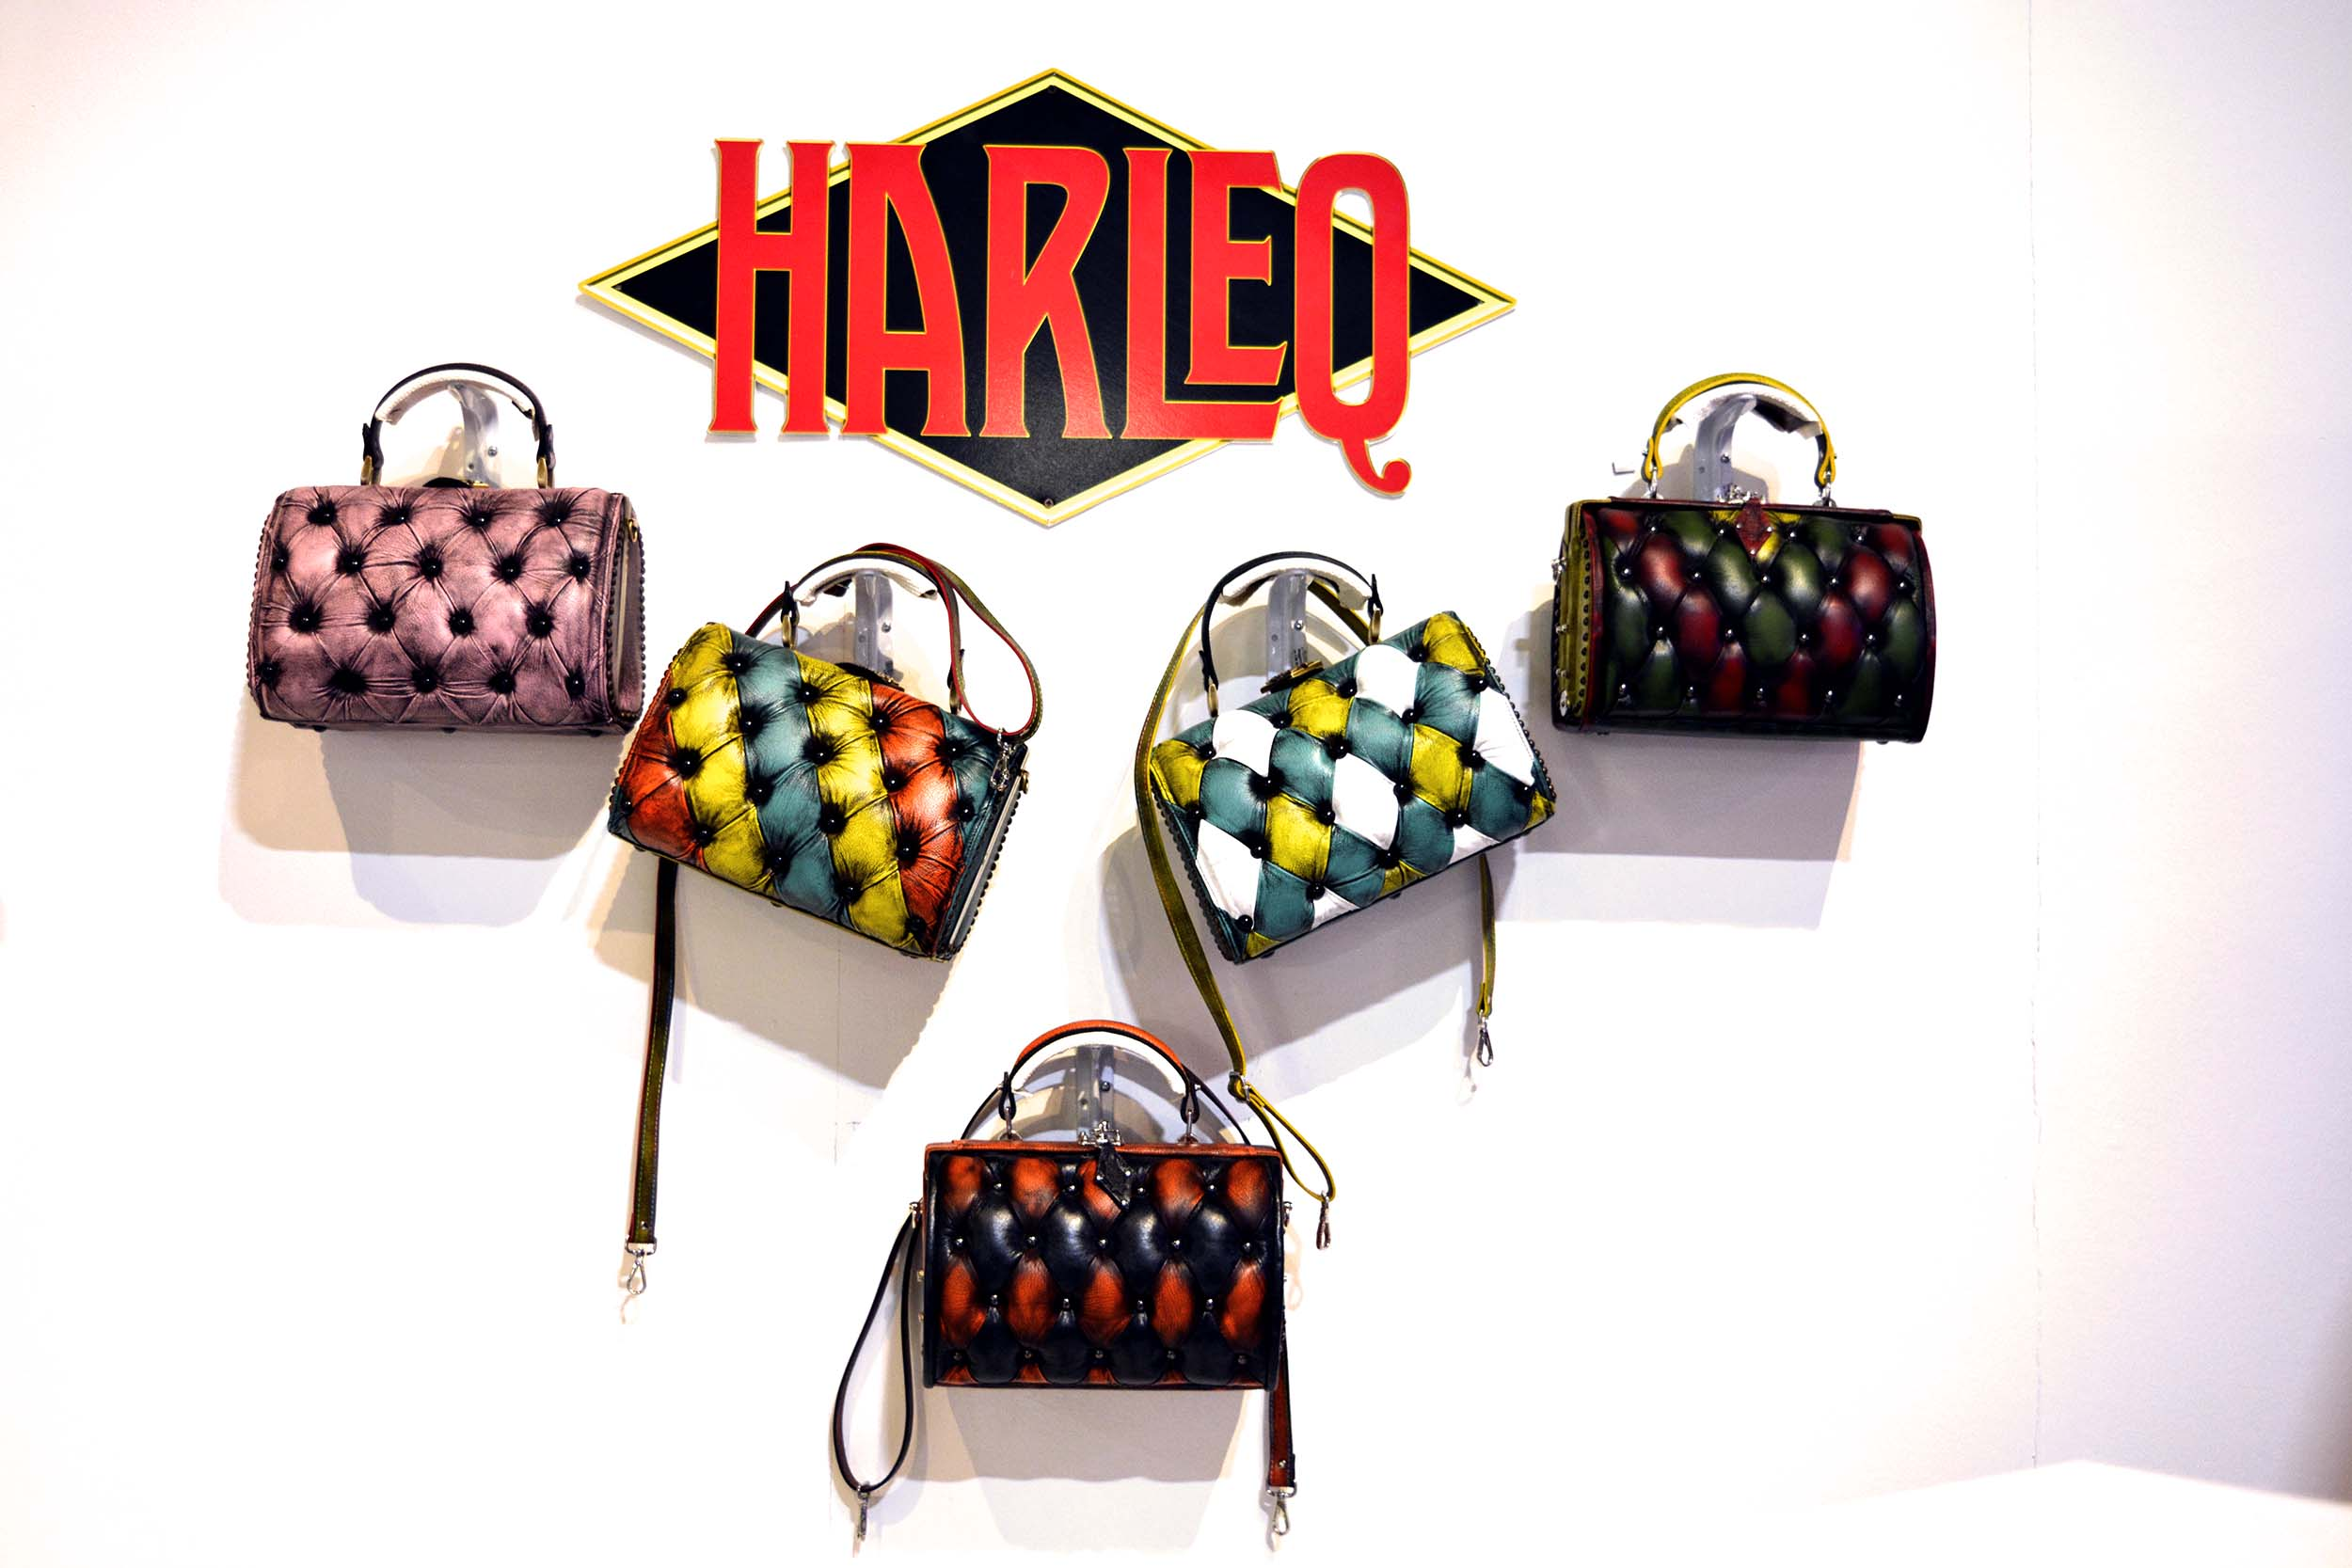 harleq-bags-trunk-vintage-luxury-leathers2018